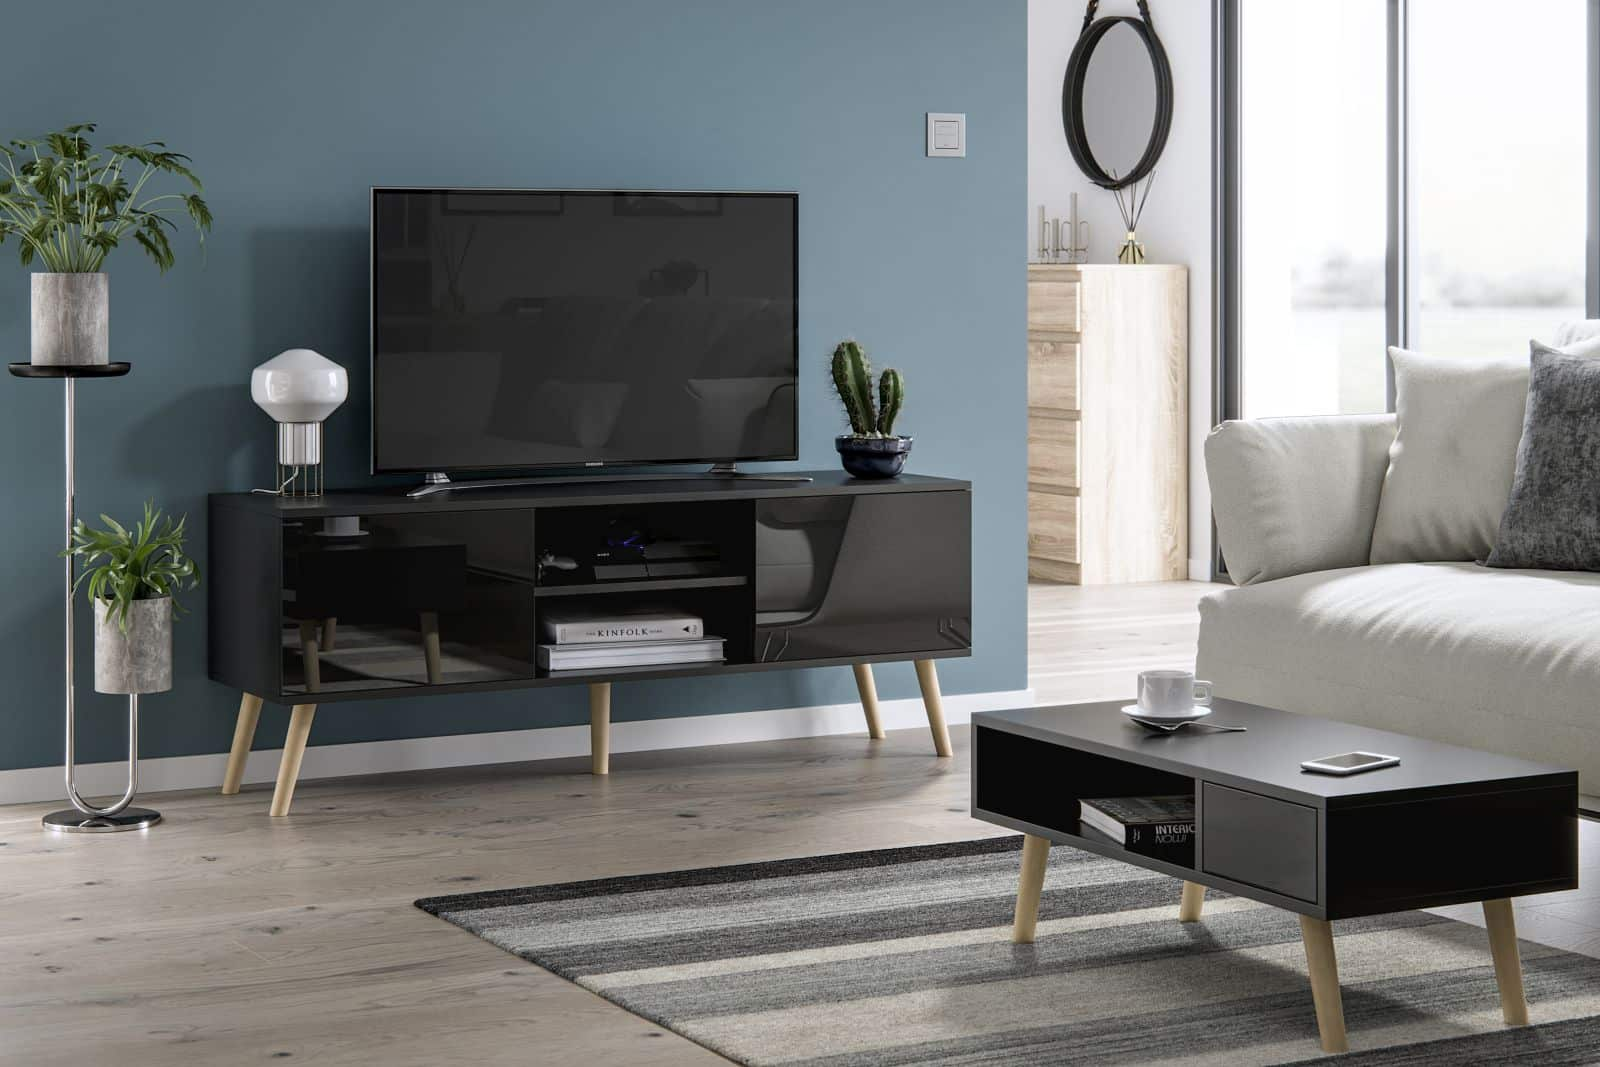 Juliet Coffee Table and Romeo TV Unit living room set